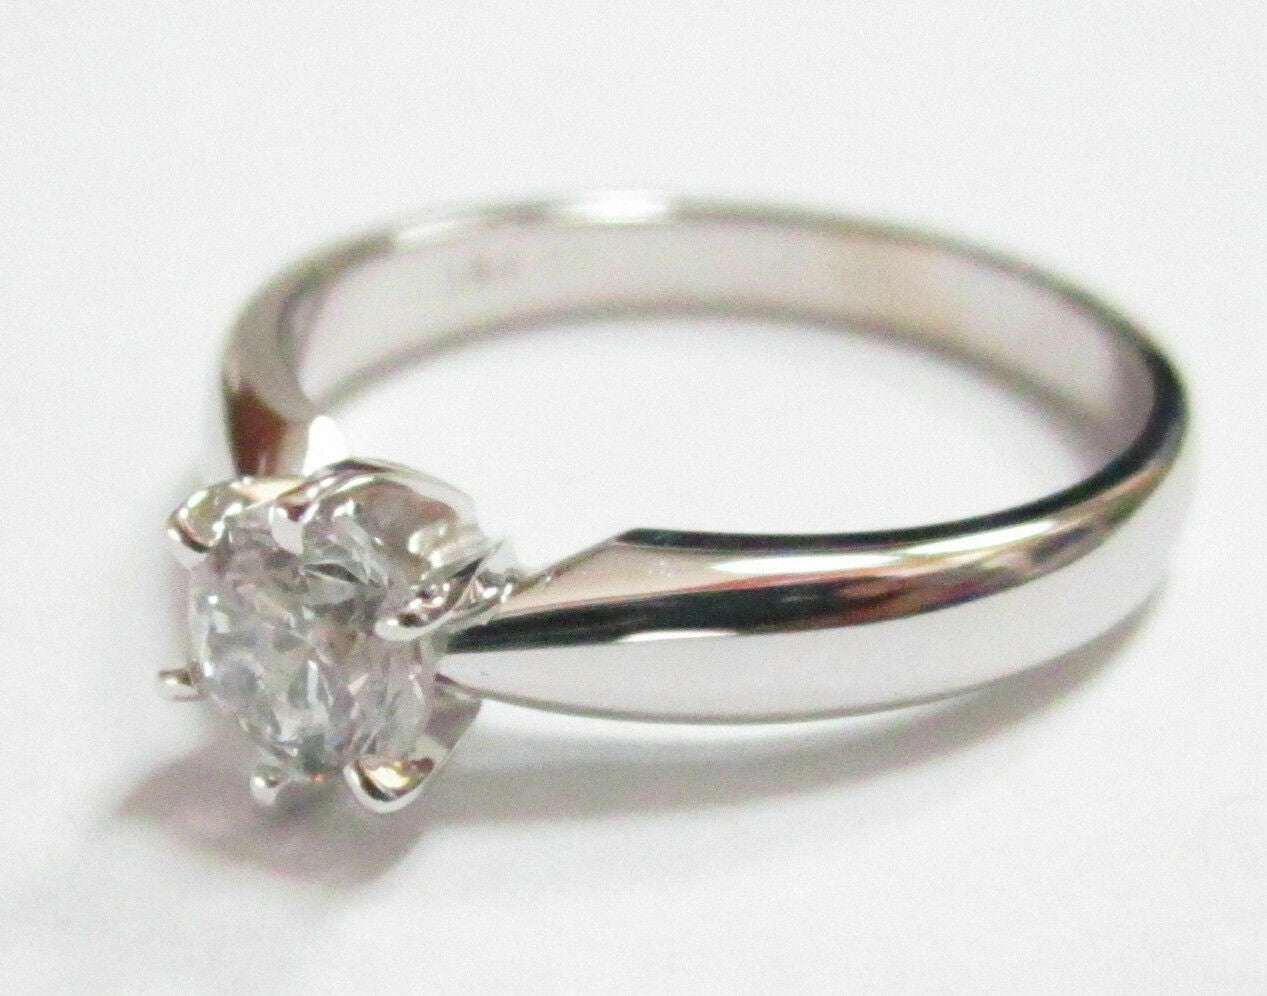 .51Ct Round Brilliant Cut Diamond Solitaire Engagement Ring Size 5.5 w/ CERT